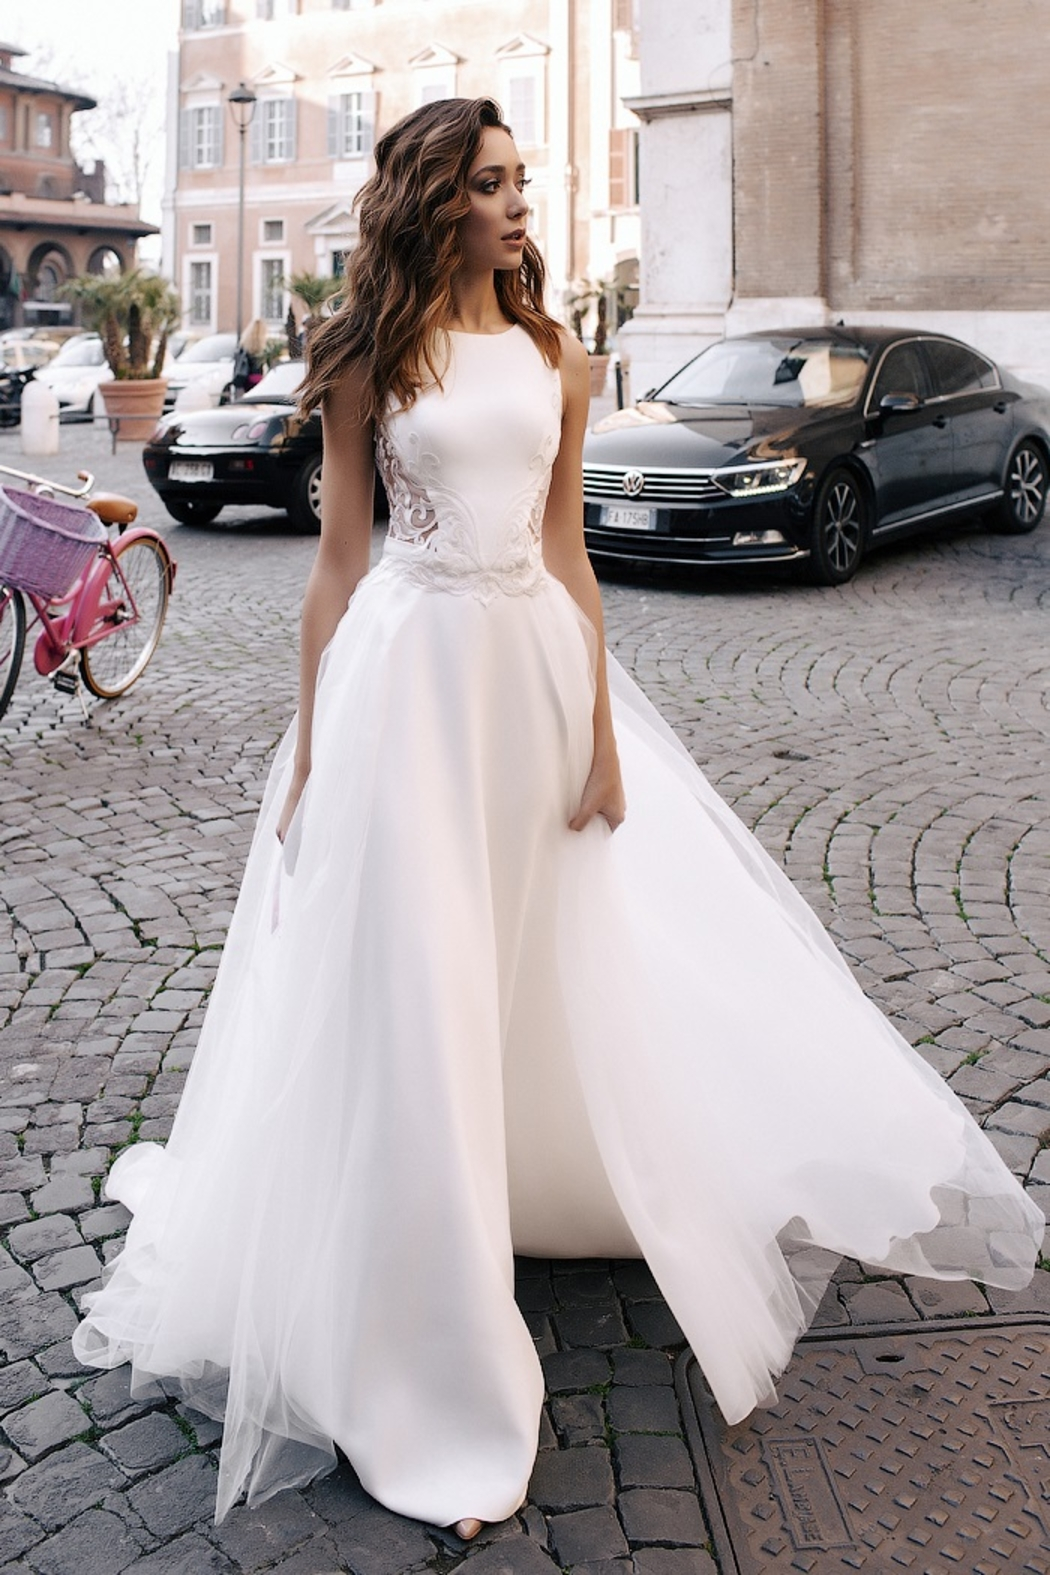 Rima Lav Ivory Lace Insert Bridal Gown With Detachable Train - Main Image